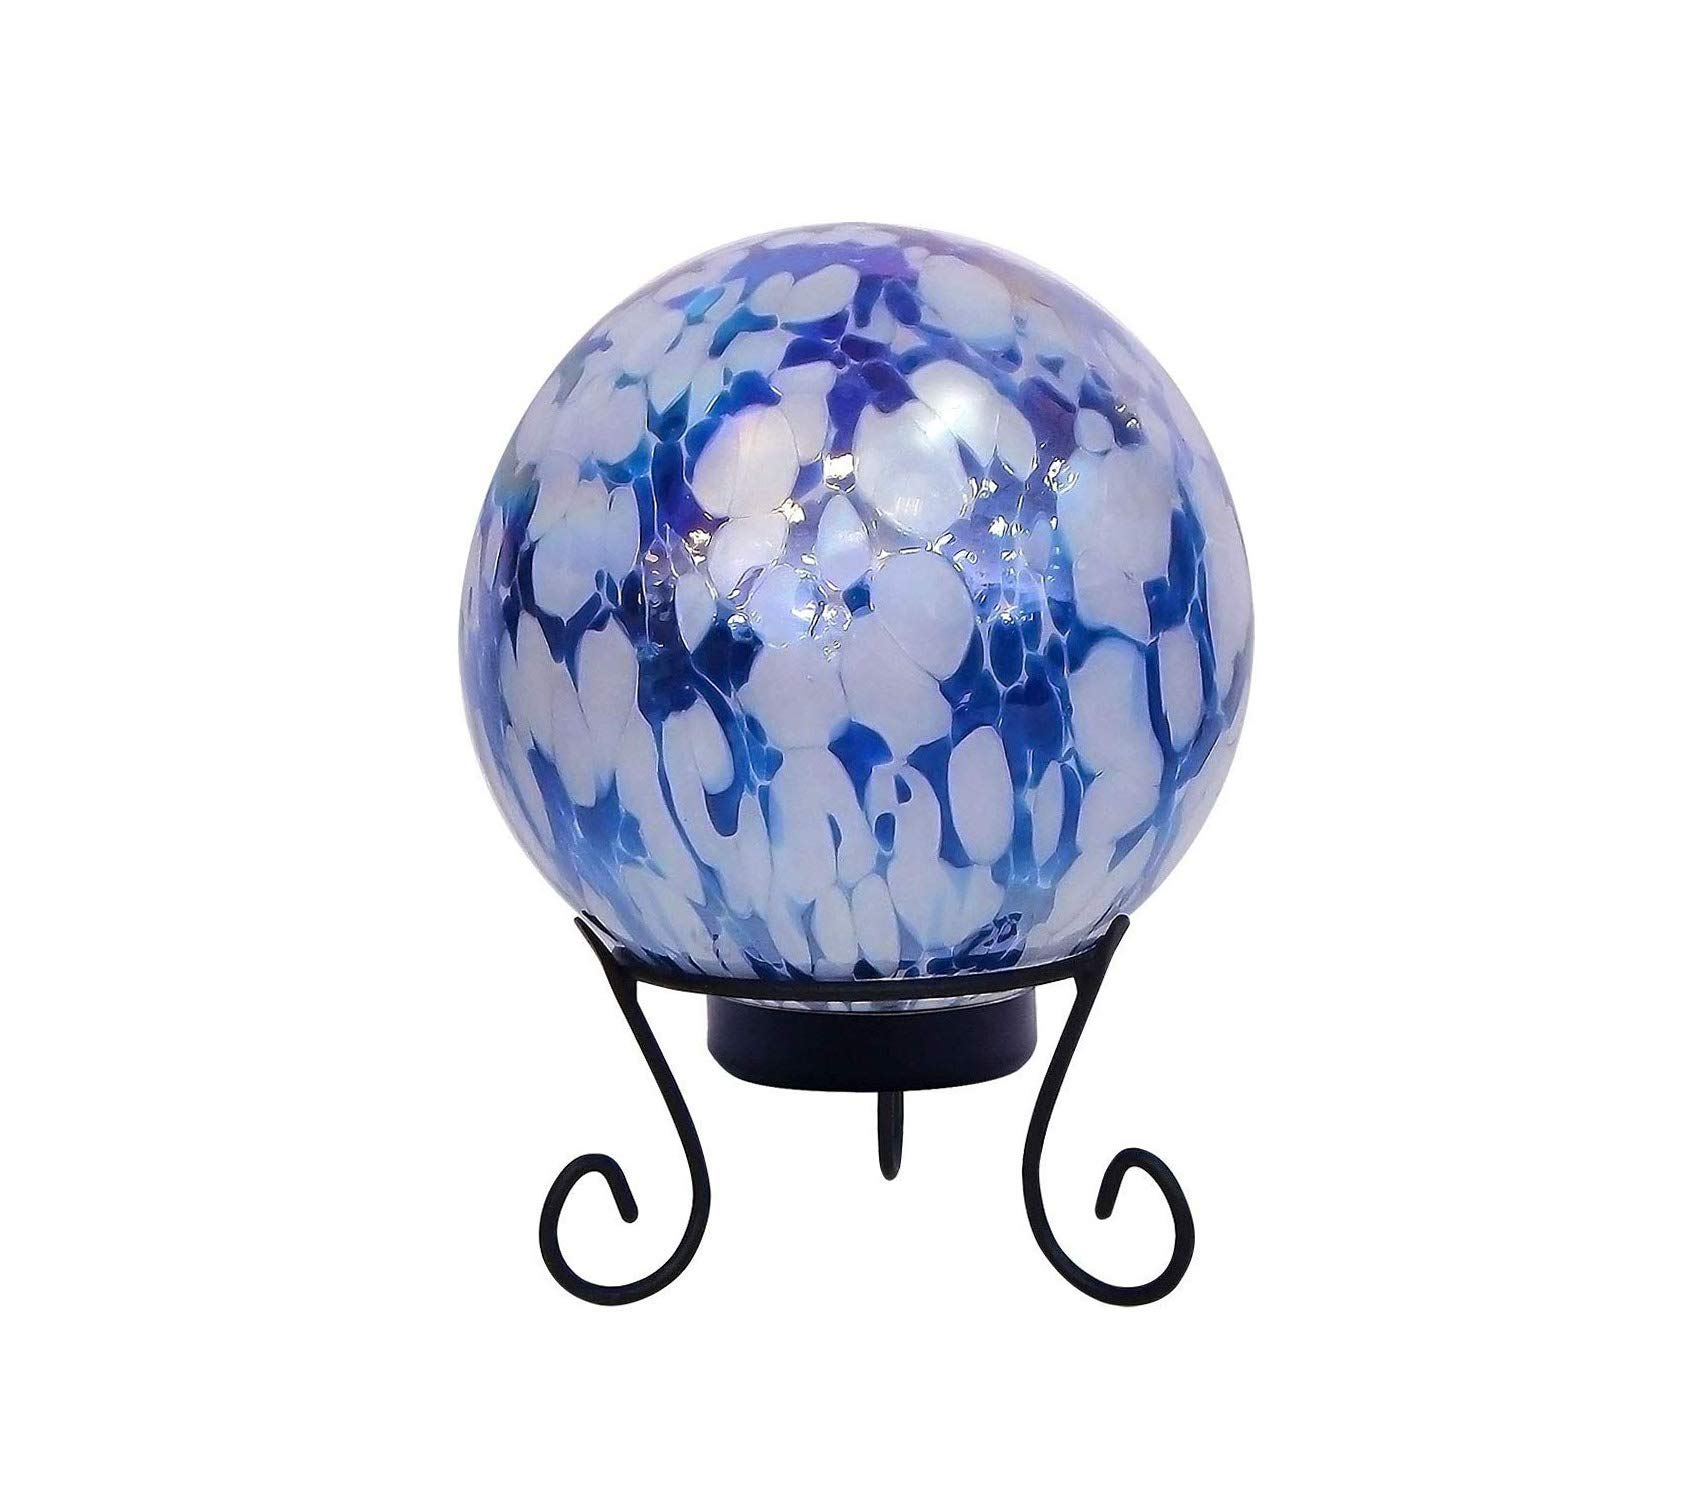 Outdoor Garden Backyard Décor Gazing Globe with LED Light, 10 Inch Tall Blue and White